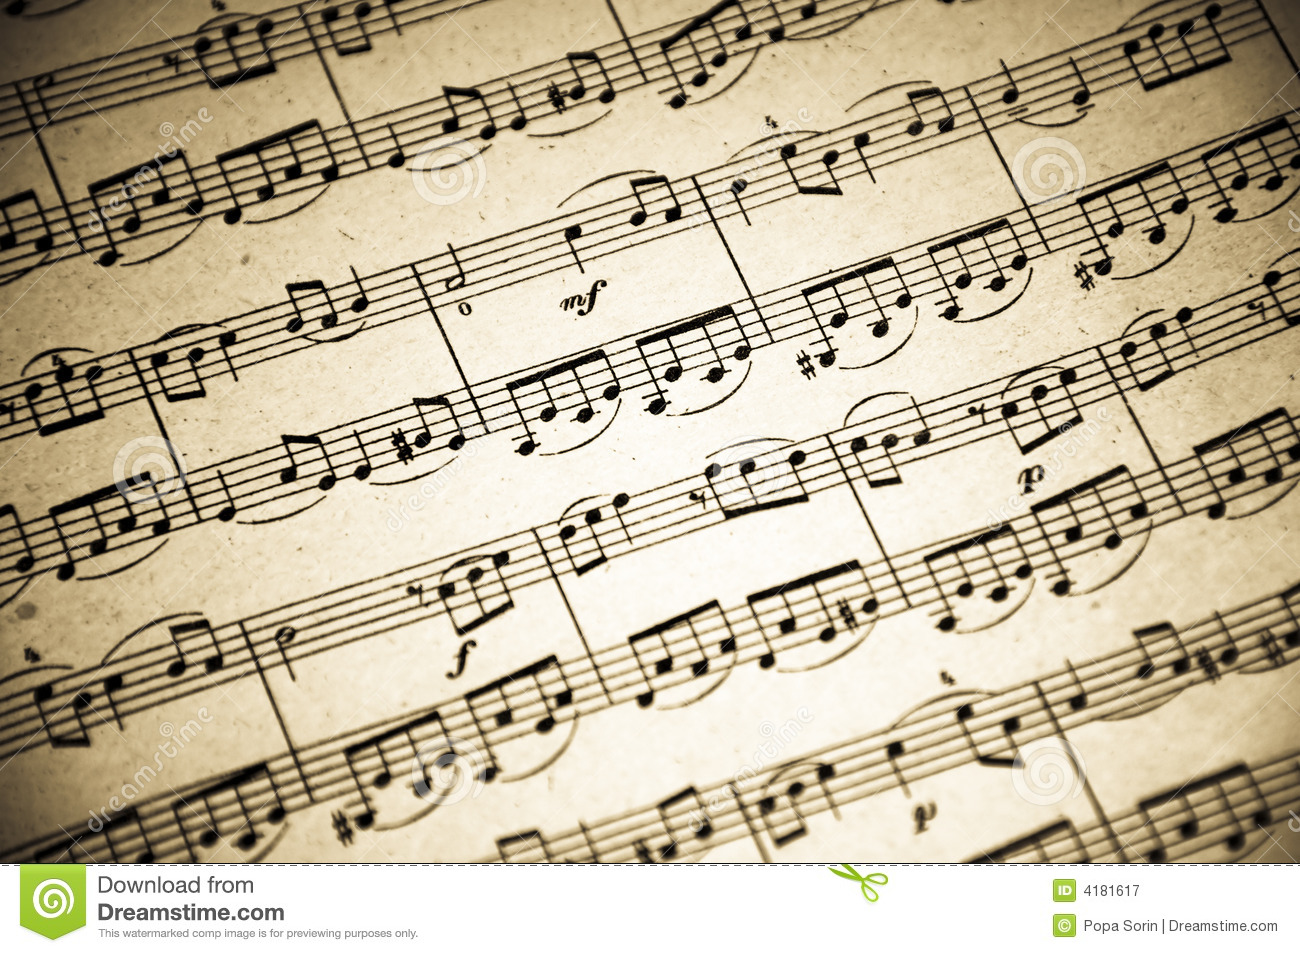 Vintage Music Note Wallpapers For Android Harmony: Music Notes Background Stock Image. Image Of Notes